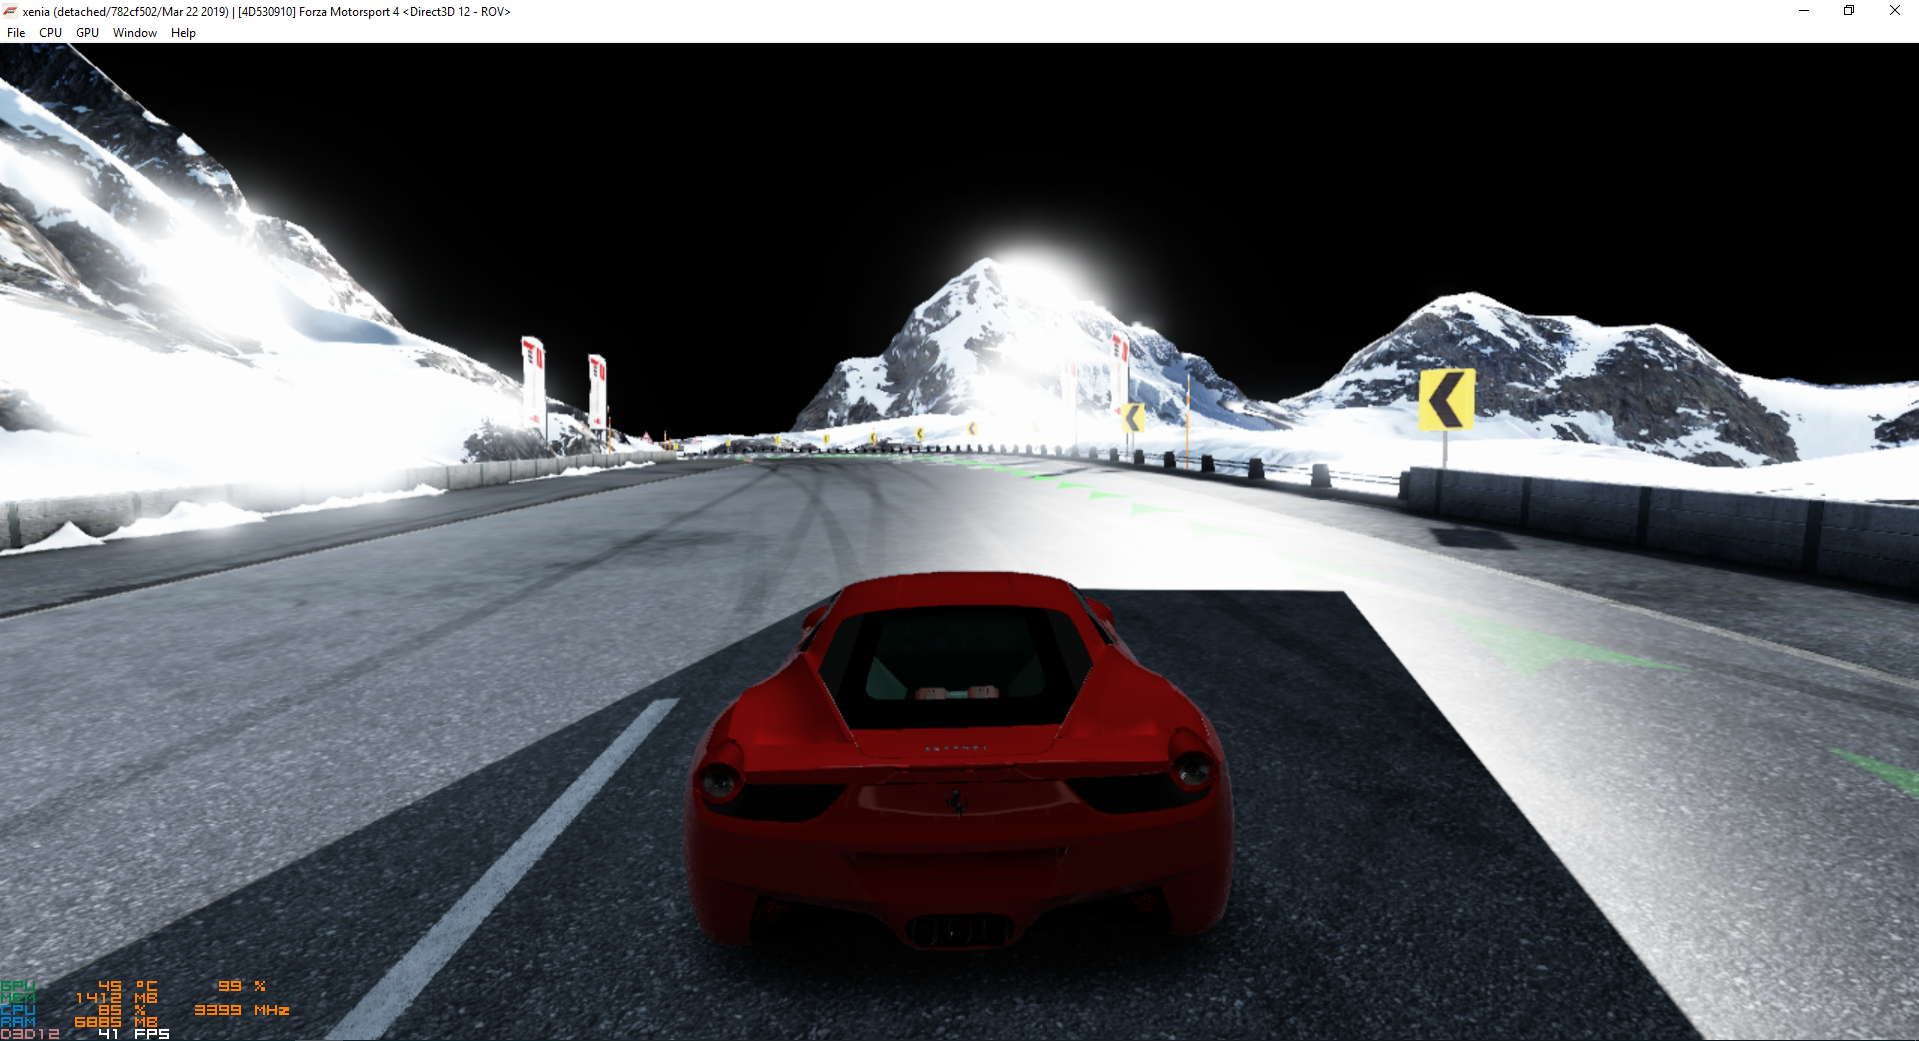 4D530910 - Forza Motorsport 4 · Issue #442 · xenia-project